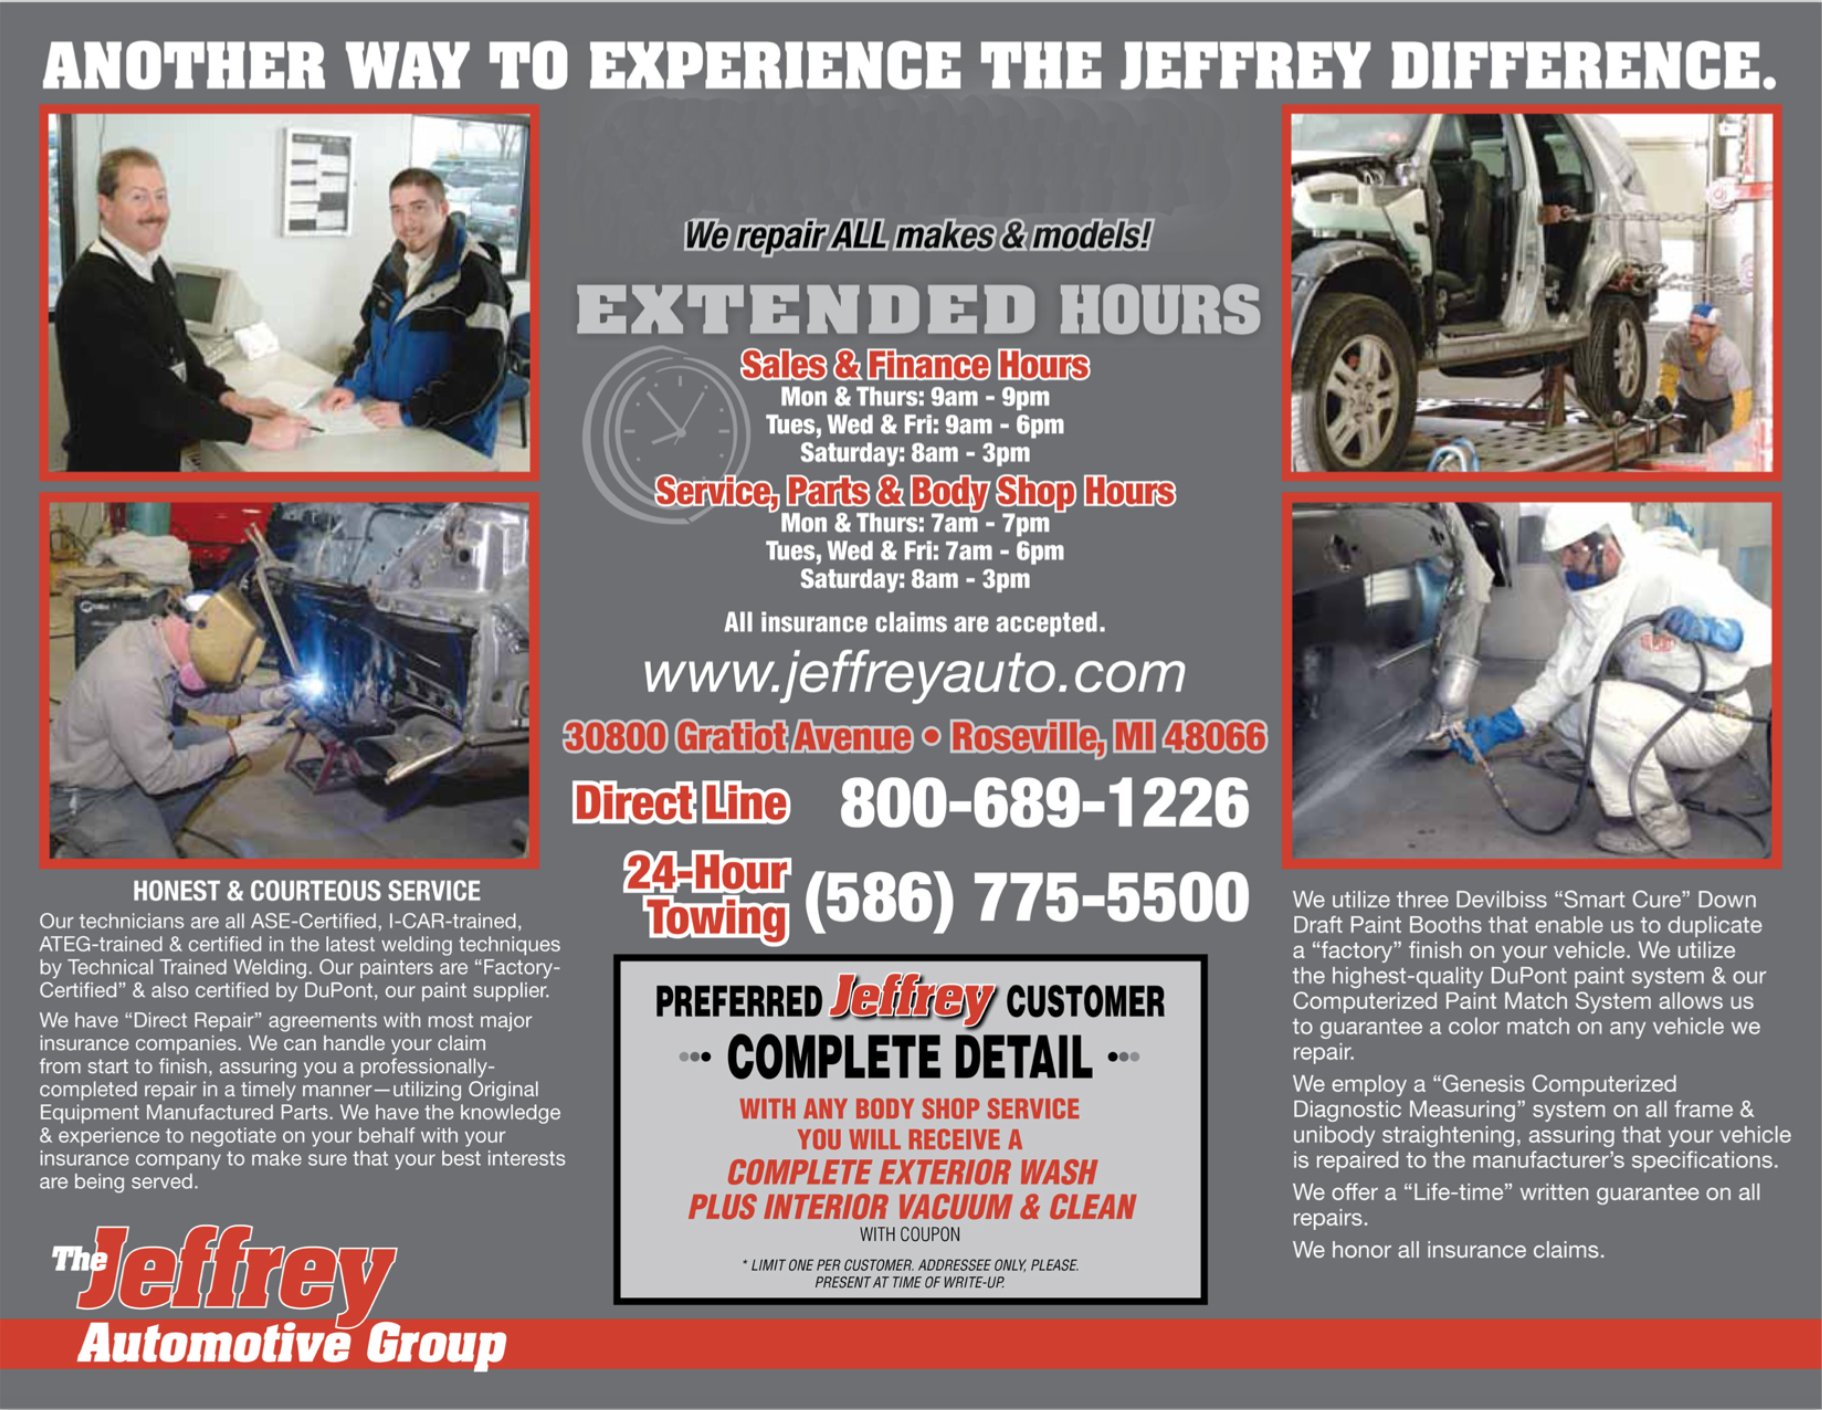 Jeffrey Auto Body